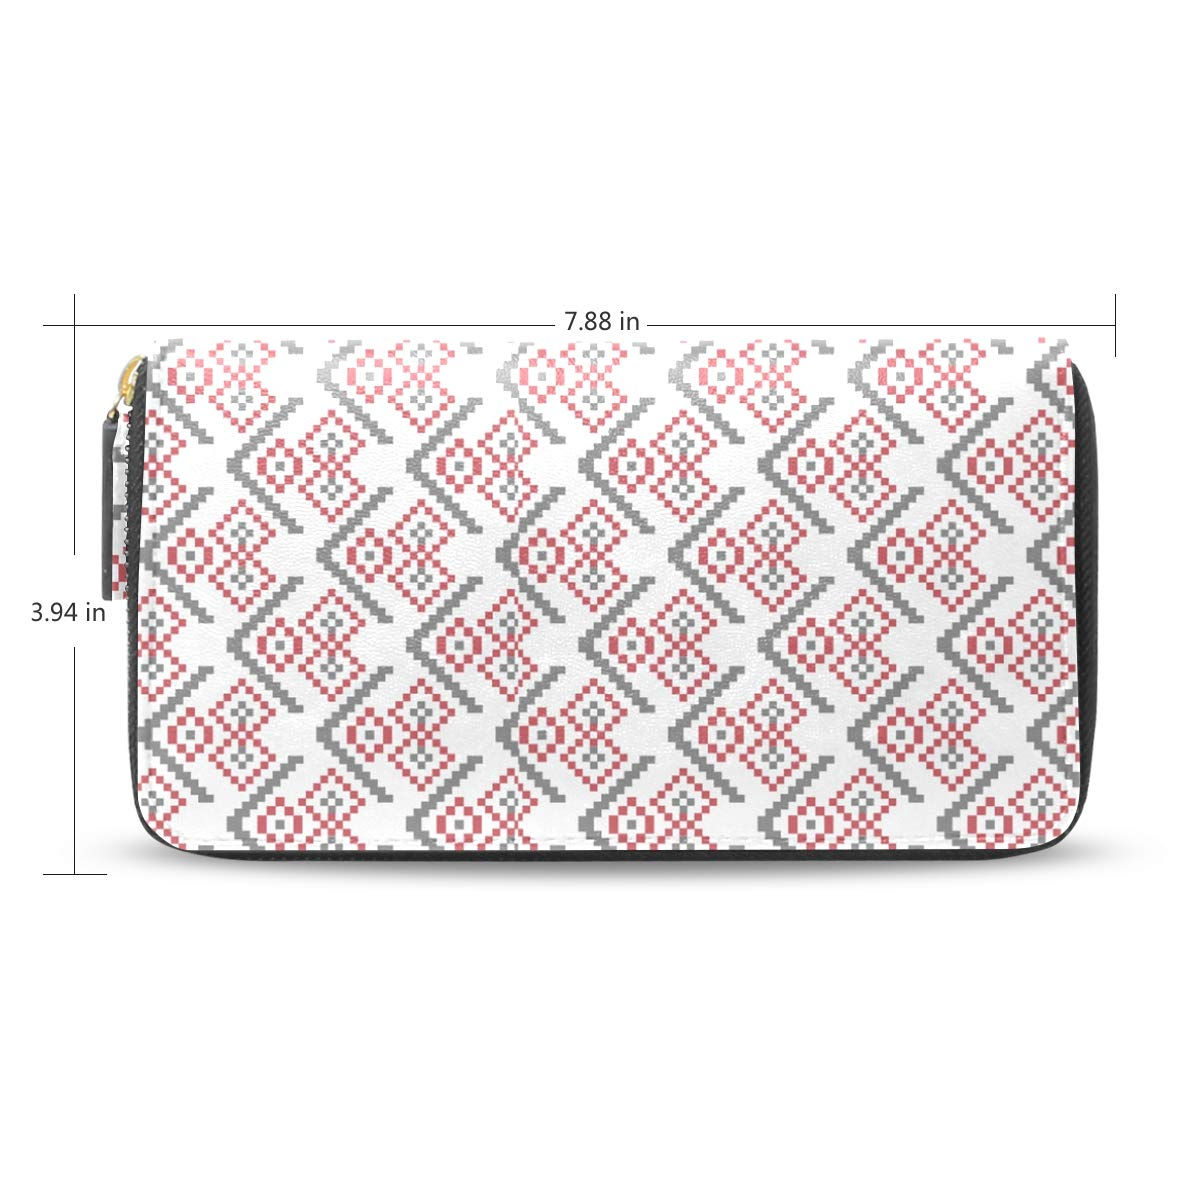 Women Plaid Snowflake Pink Vector Leather Wallet Large Capacity Zipper Travel Wristlet Bags Clutch Cellphone Bag